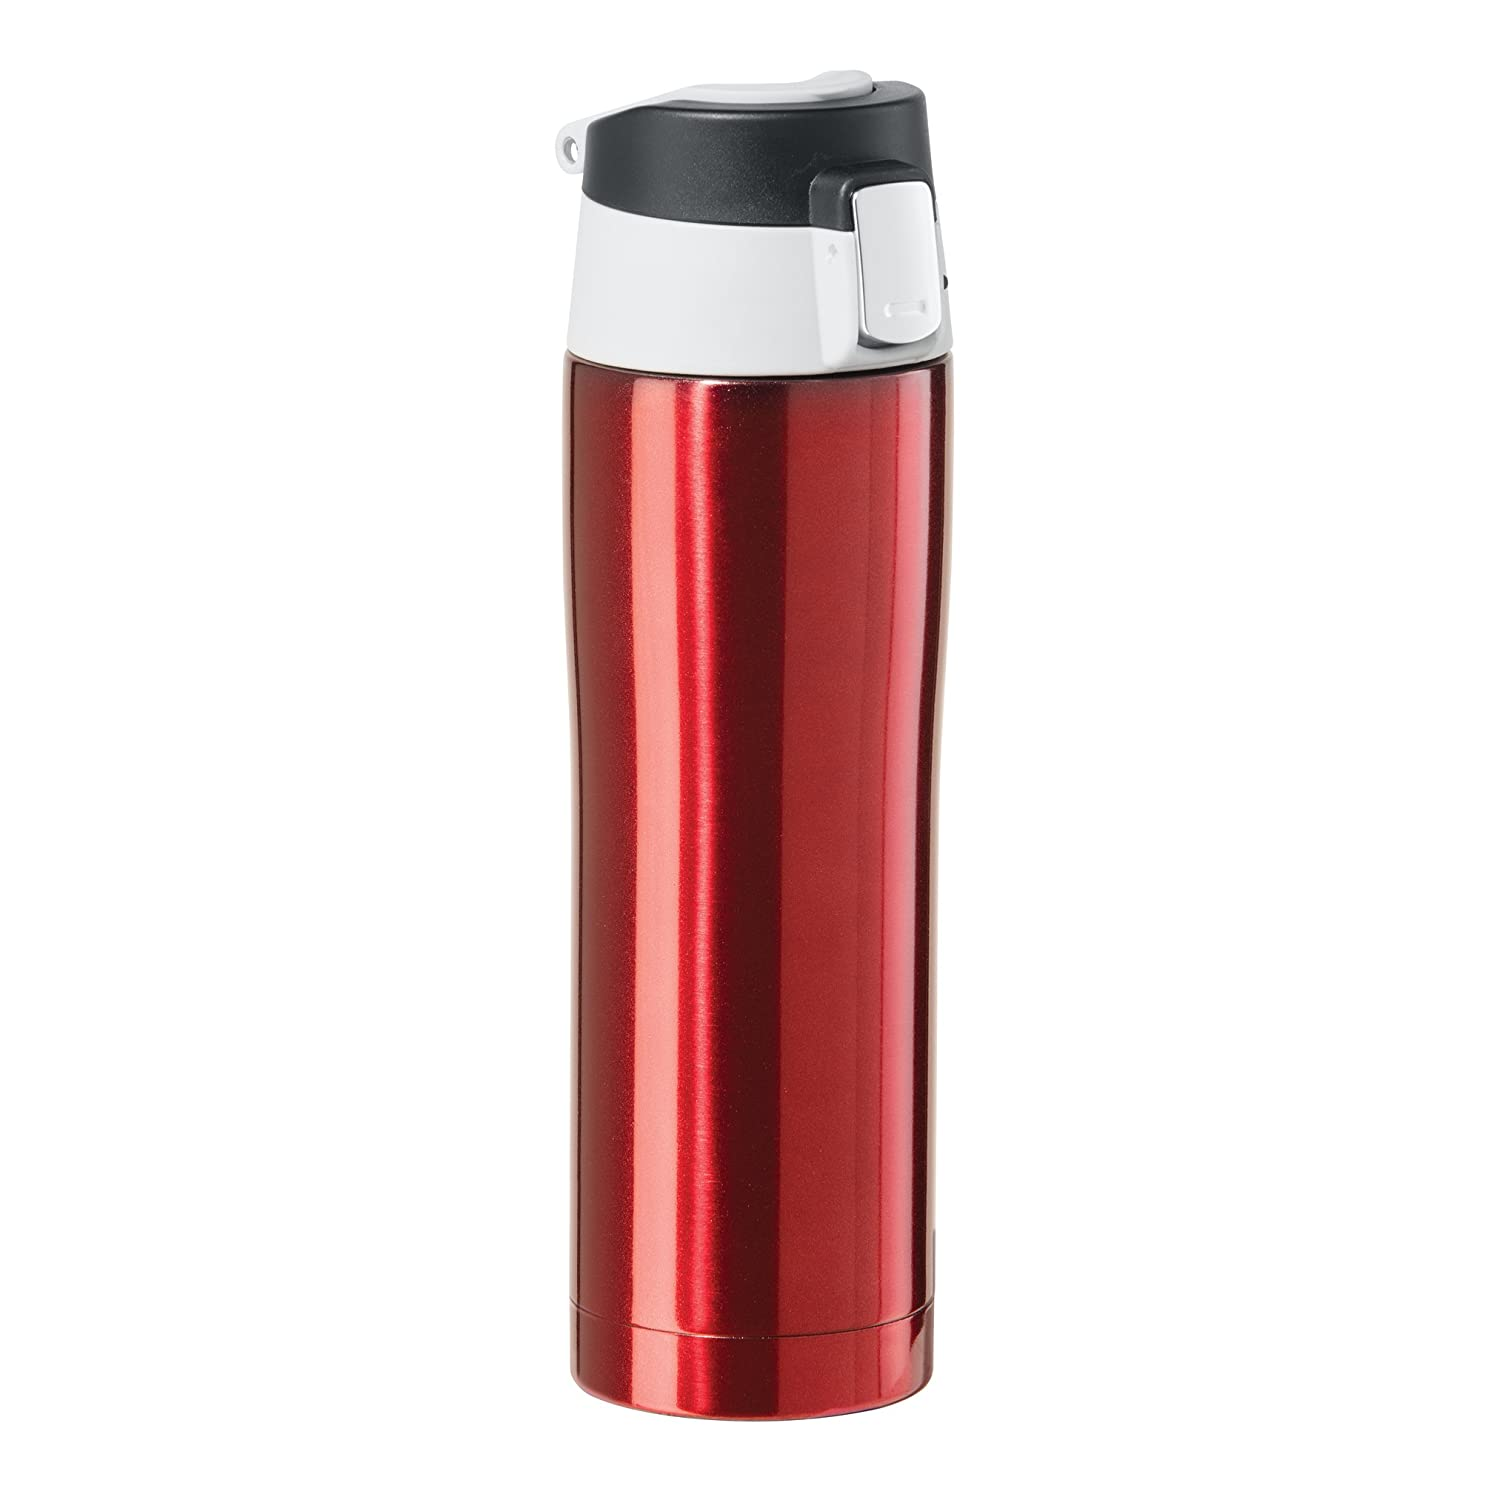 Oggi 8078.2 Double Wall Vacuum Sealed Stainless Steel Travel Mug with Flip-Open Locking Lid (0.5 Lt./16 Oz.)-Red by Oggi B01CUS76WE  レッド